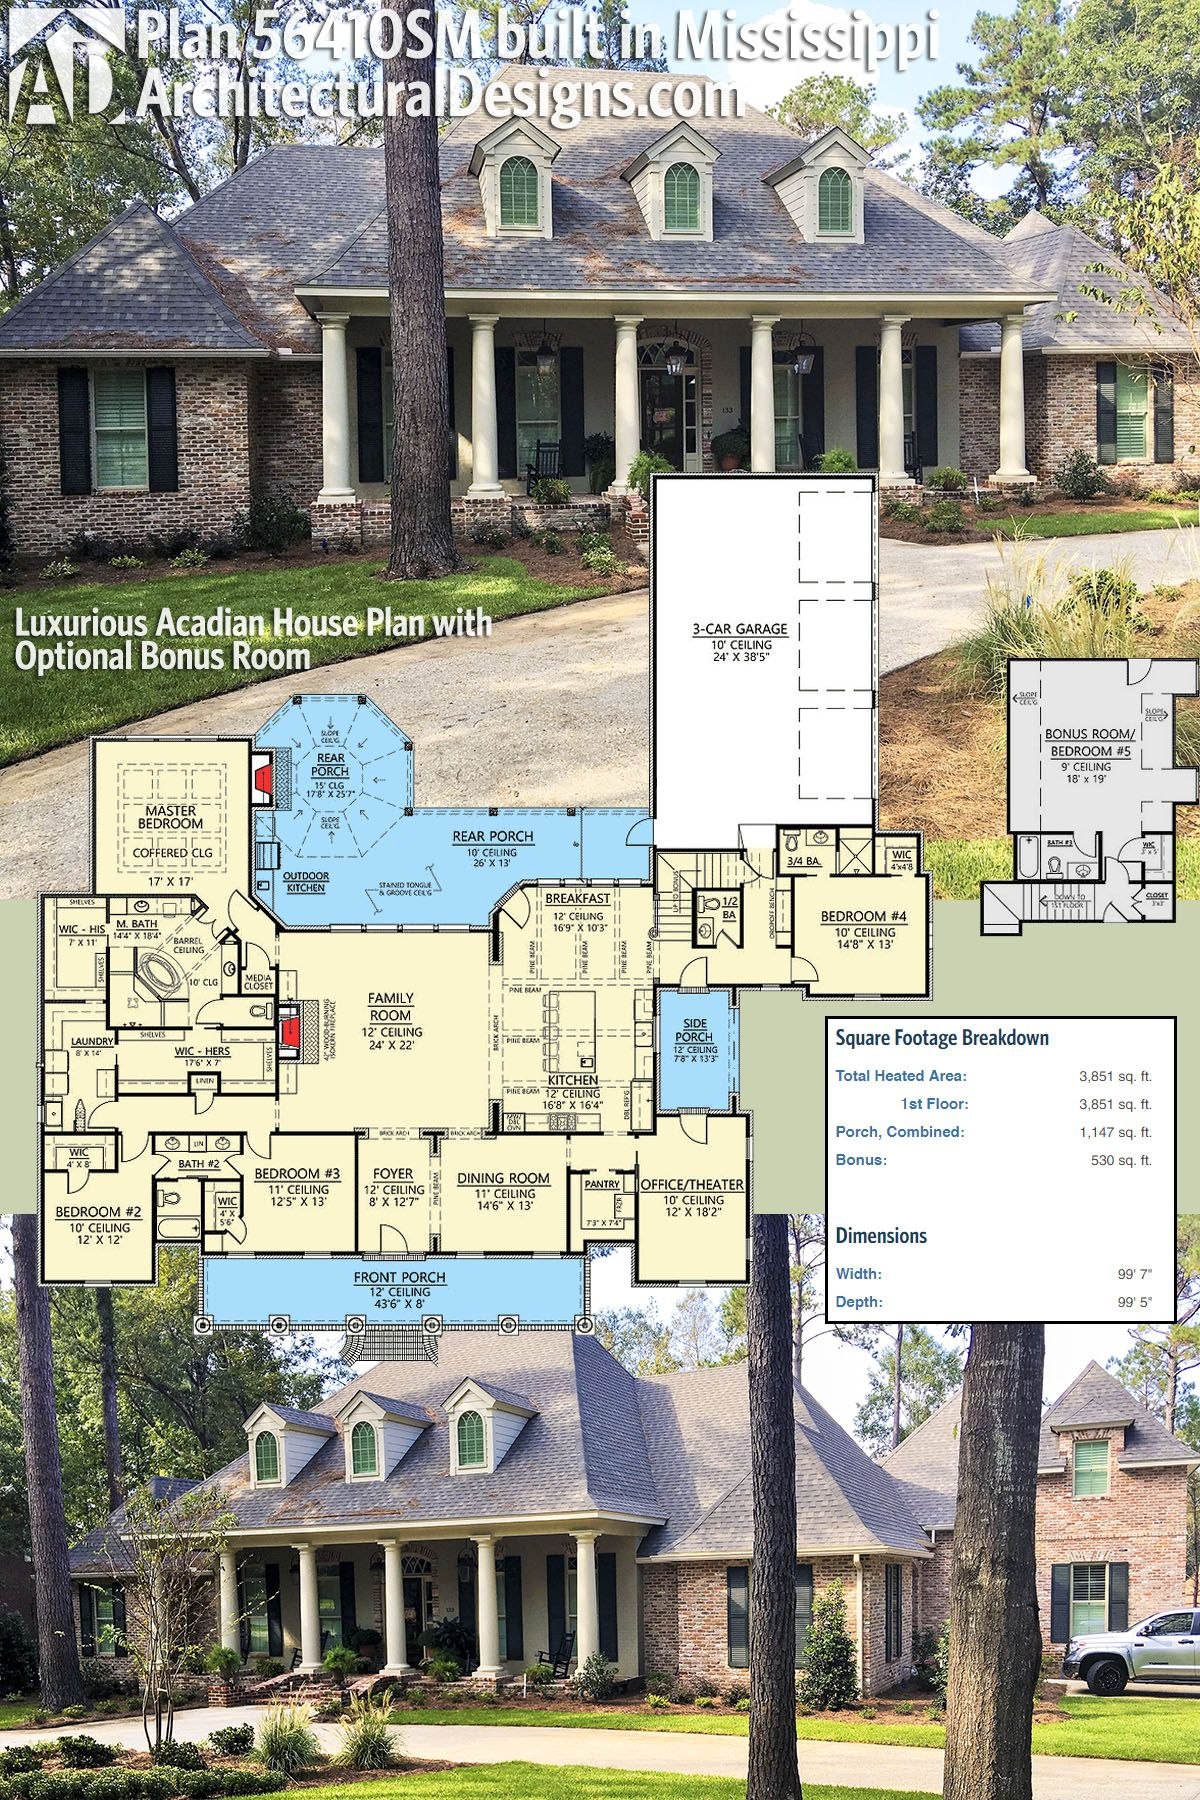 Plan 56410sm Luxurious Acadian House Plan With Optional Bonus Room Acadian House Plans House Plans Dream House Plans